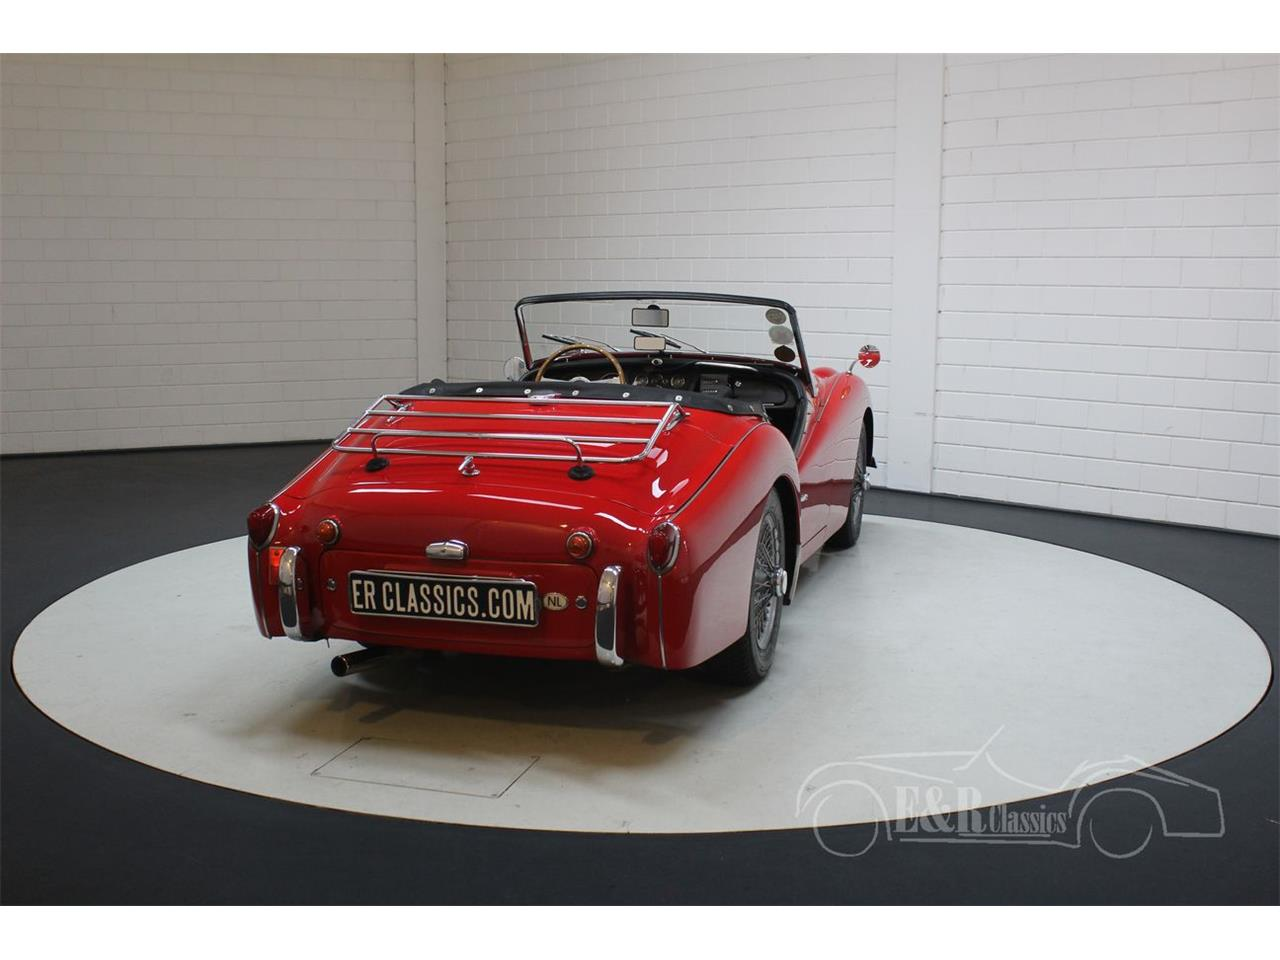 Large Picture of 1960 Triumph TR3A located in Waalwijk noord brabant - $41,400.00 Offered by E & R Classics - Q31H